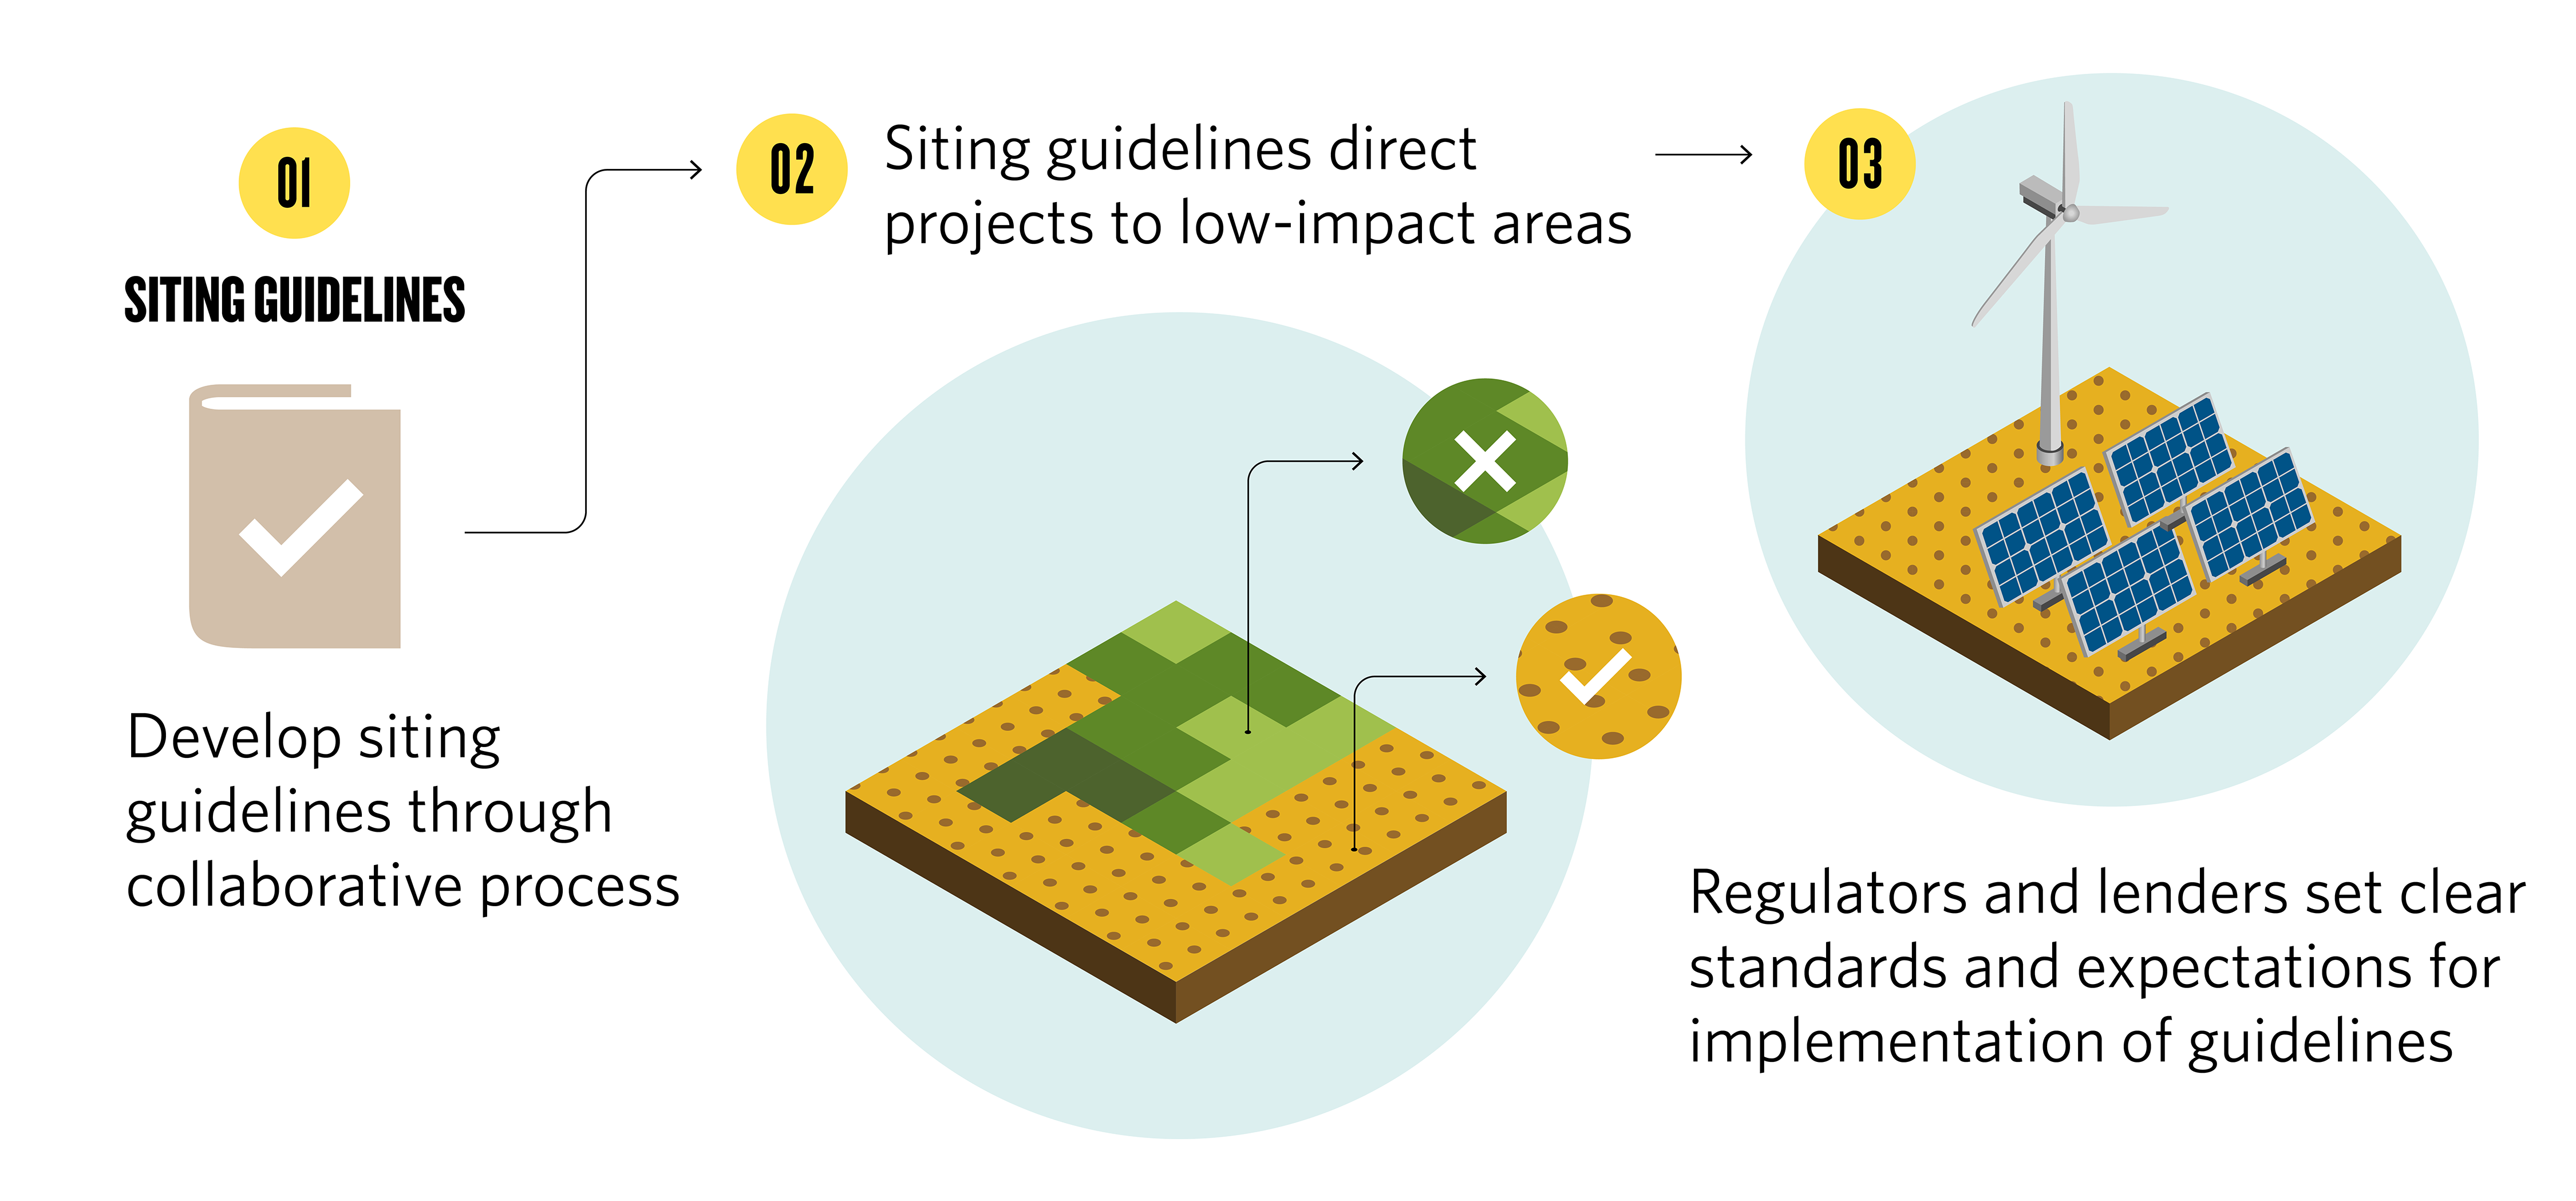 a flowchart showing siting guidelines directing energy projects to low-impact land, with regulators and lenders setting clear standards for adopting those guidelines.